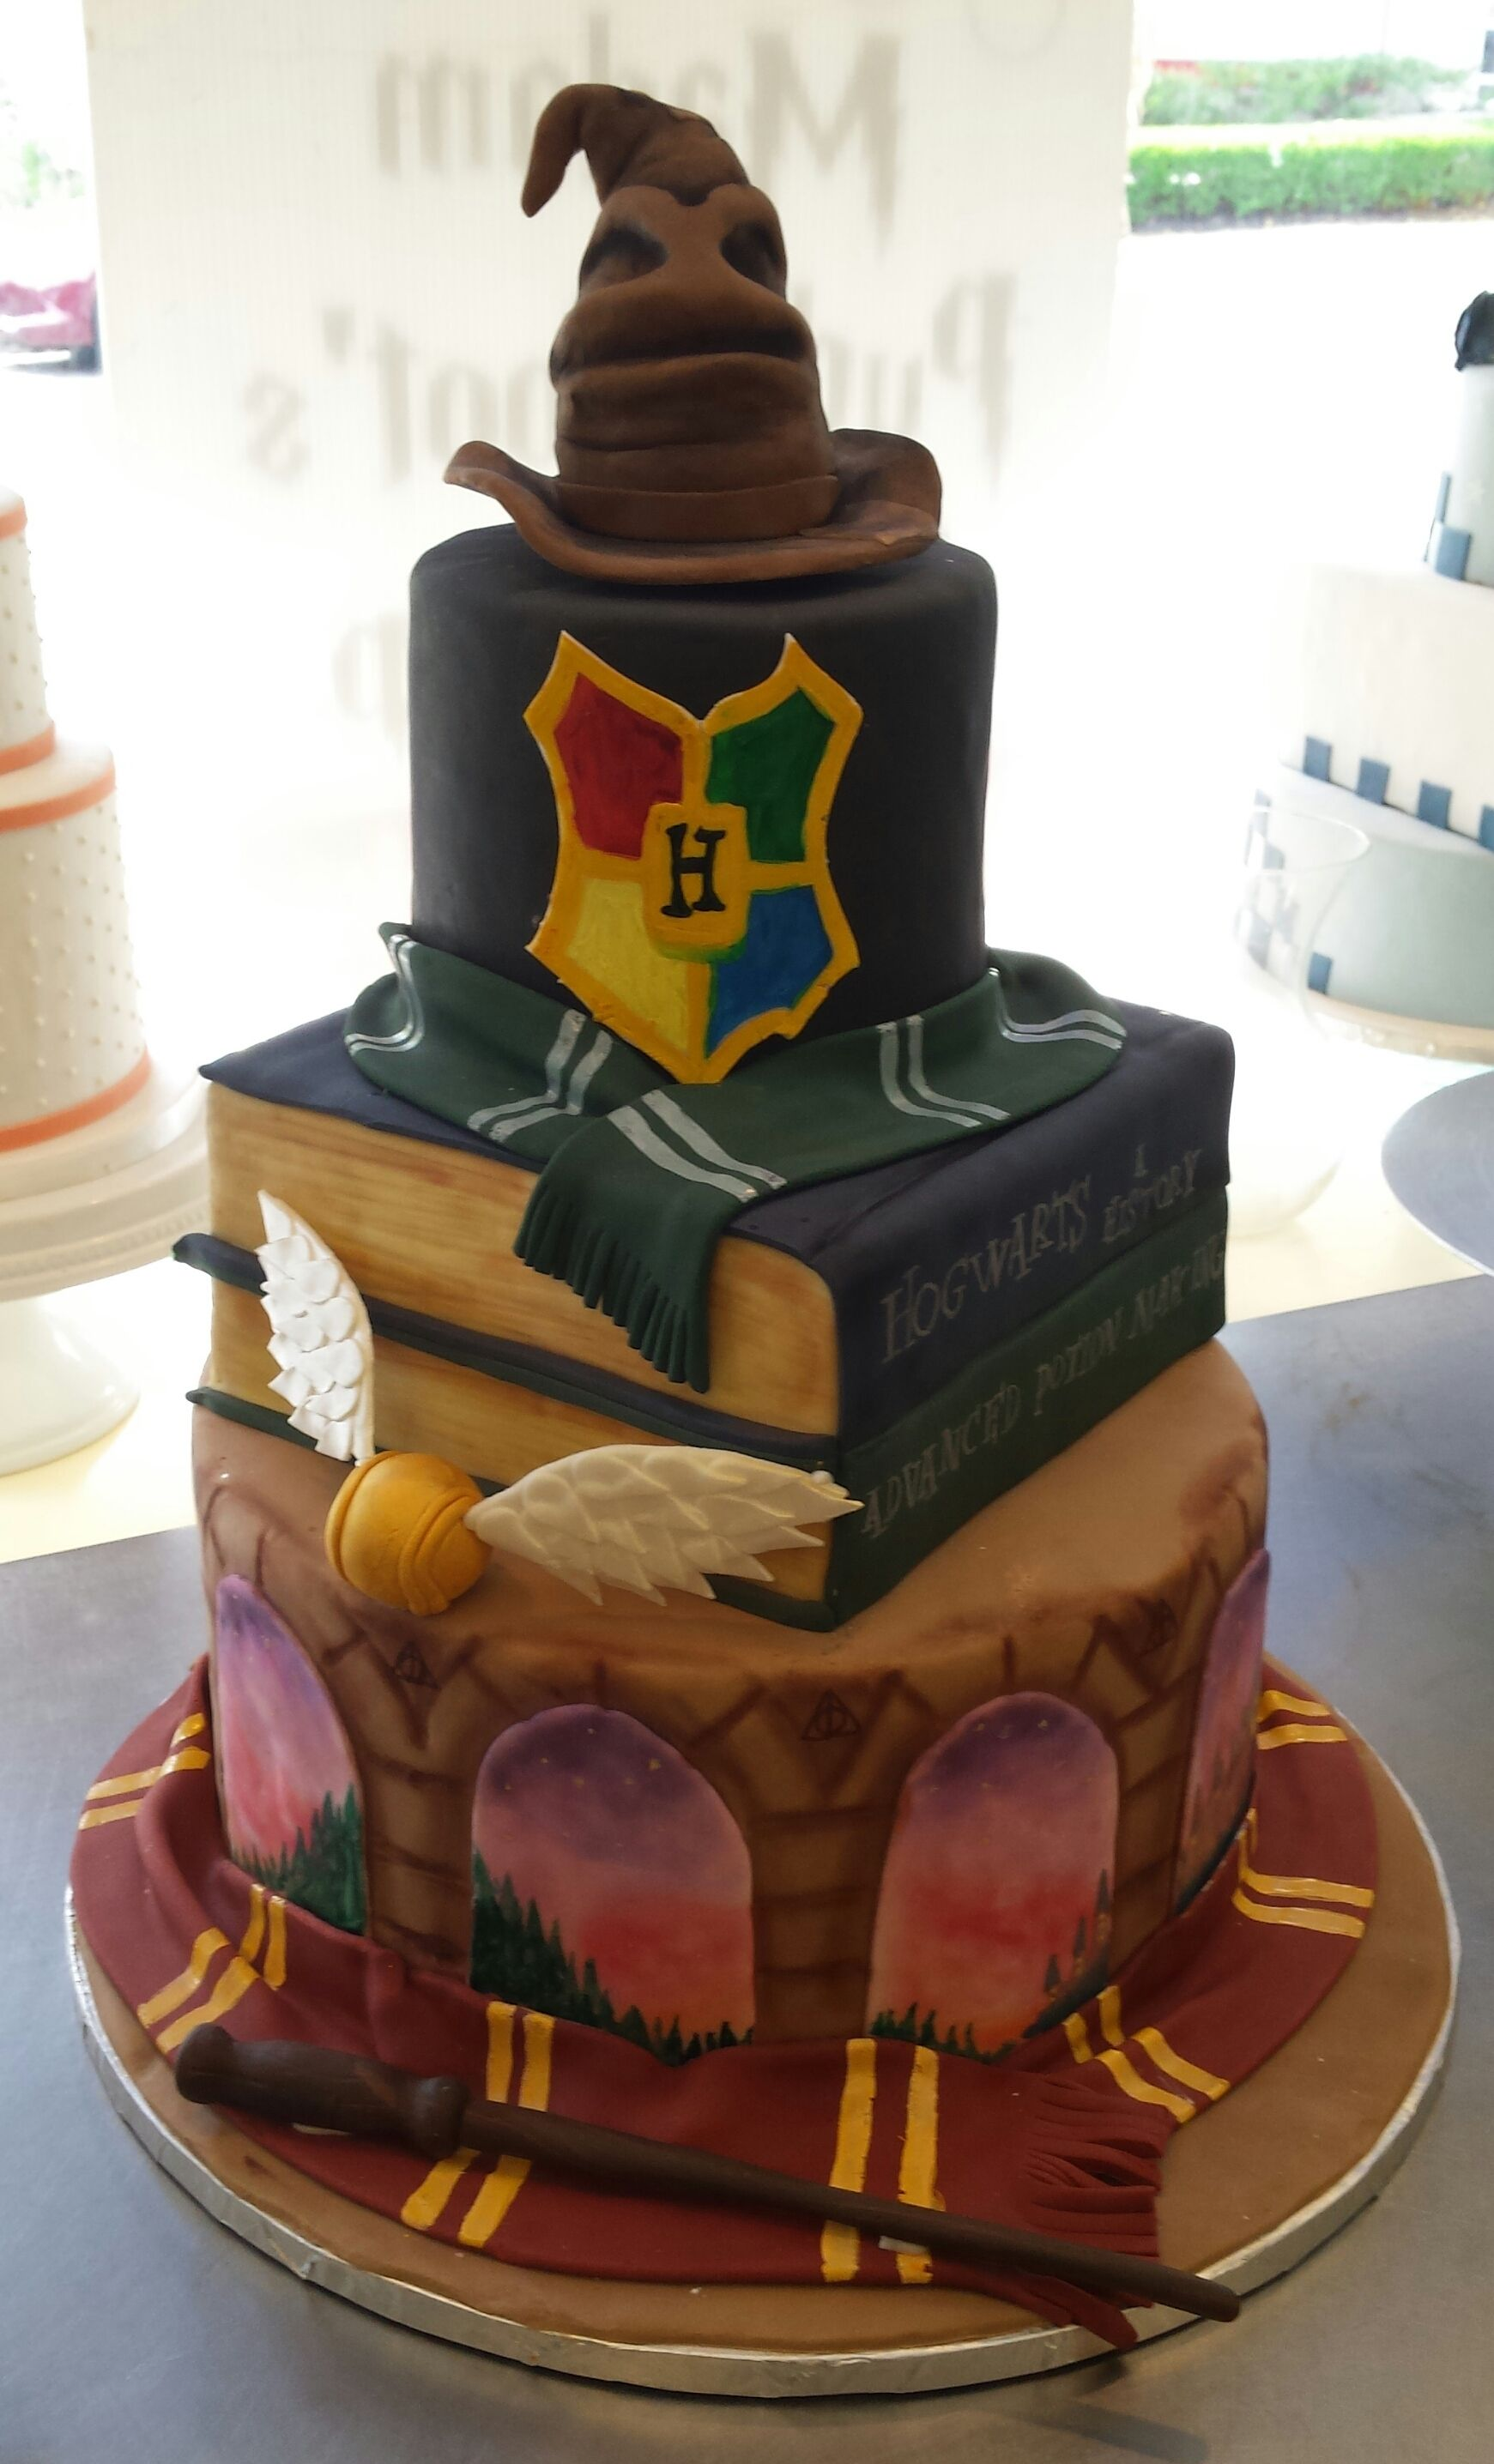 A Magical Harry Potter Themed Wedding Cake Artfully Created By